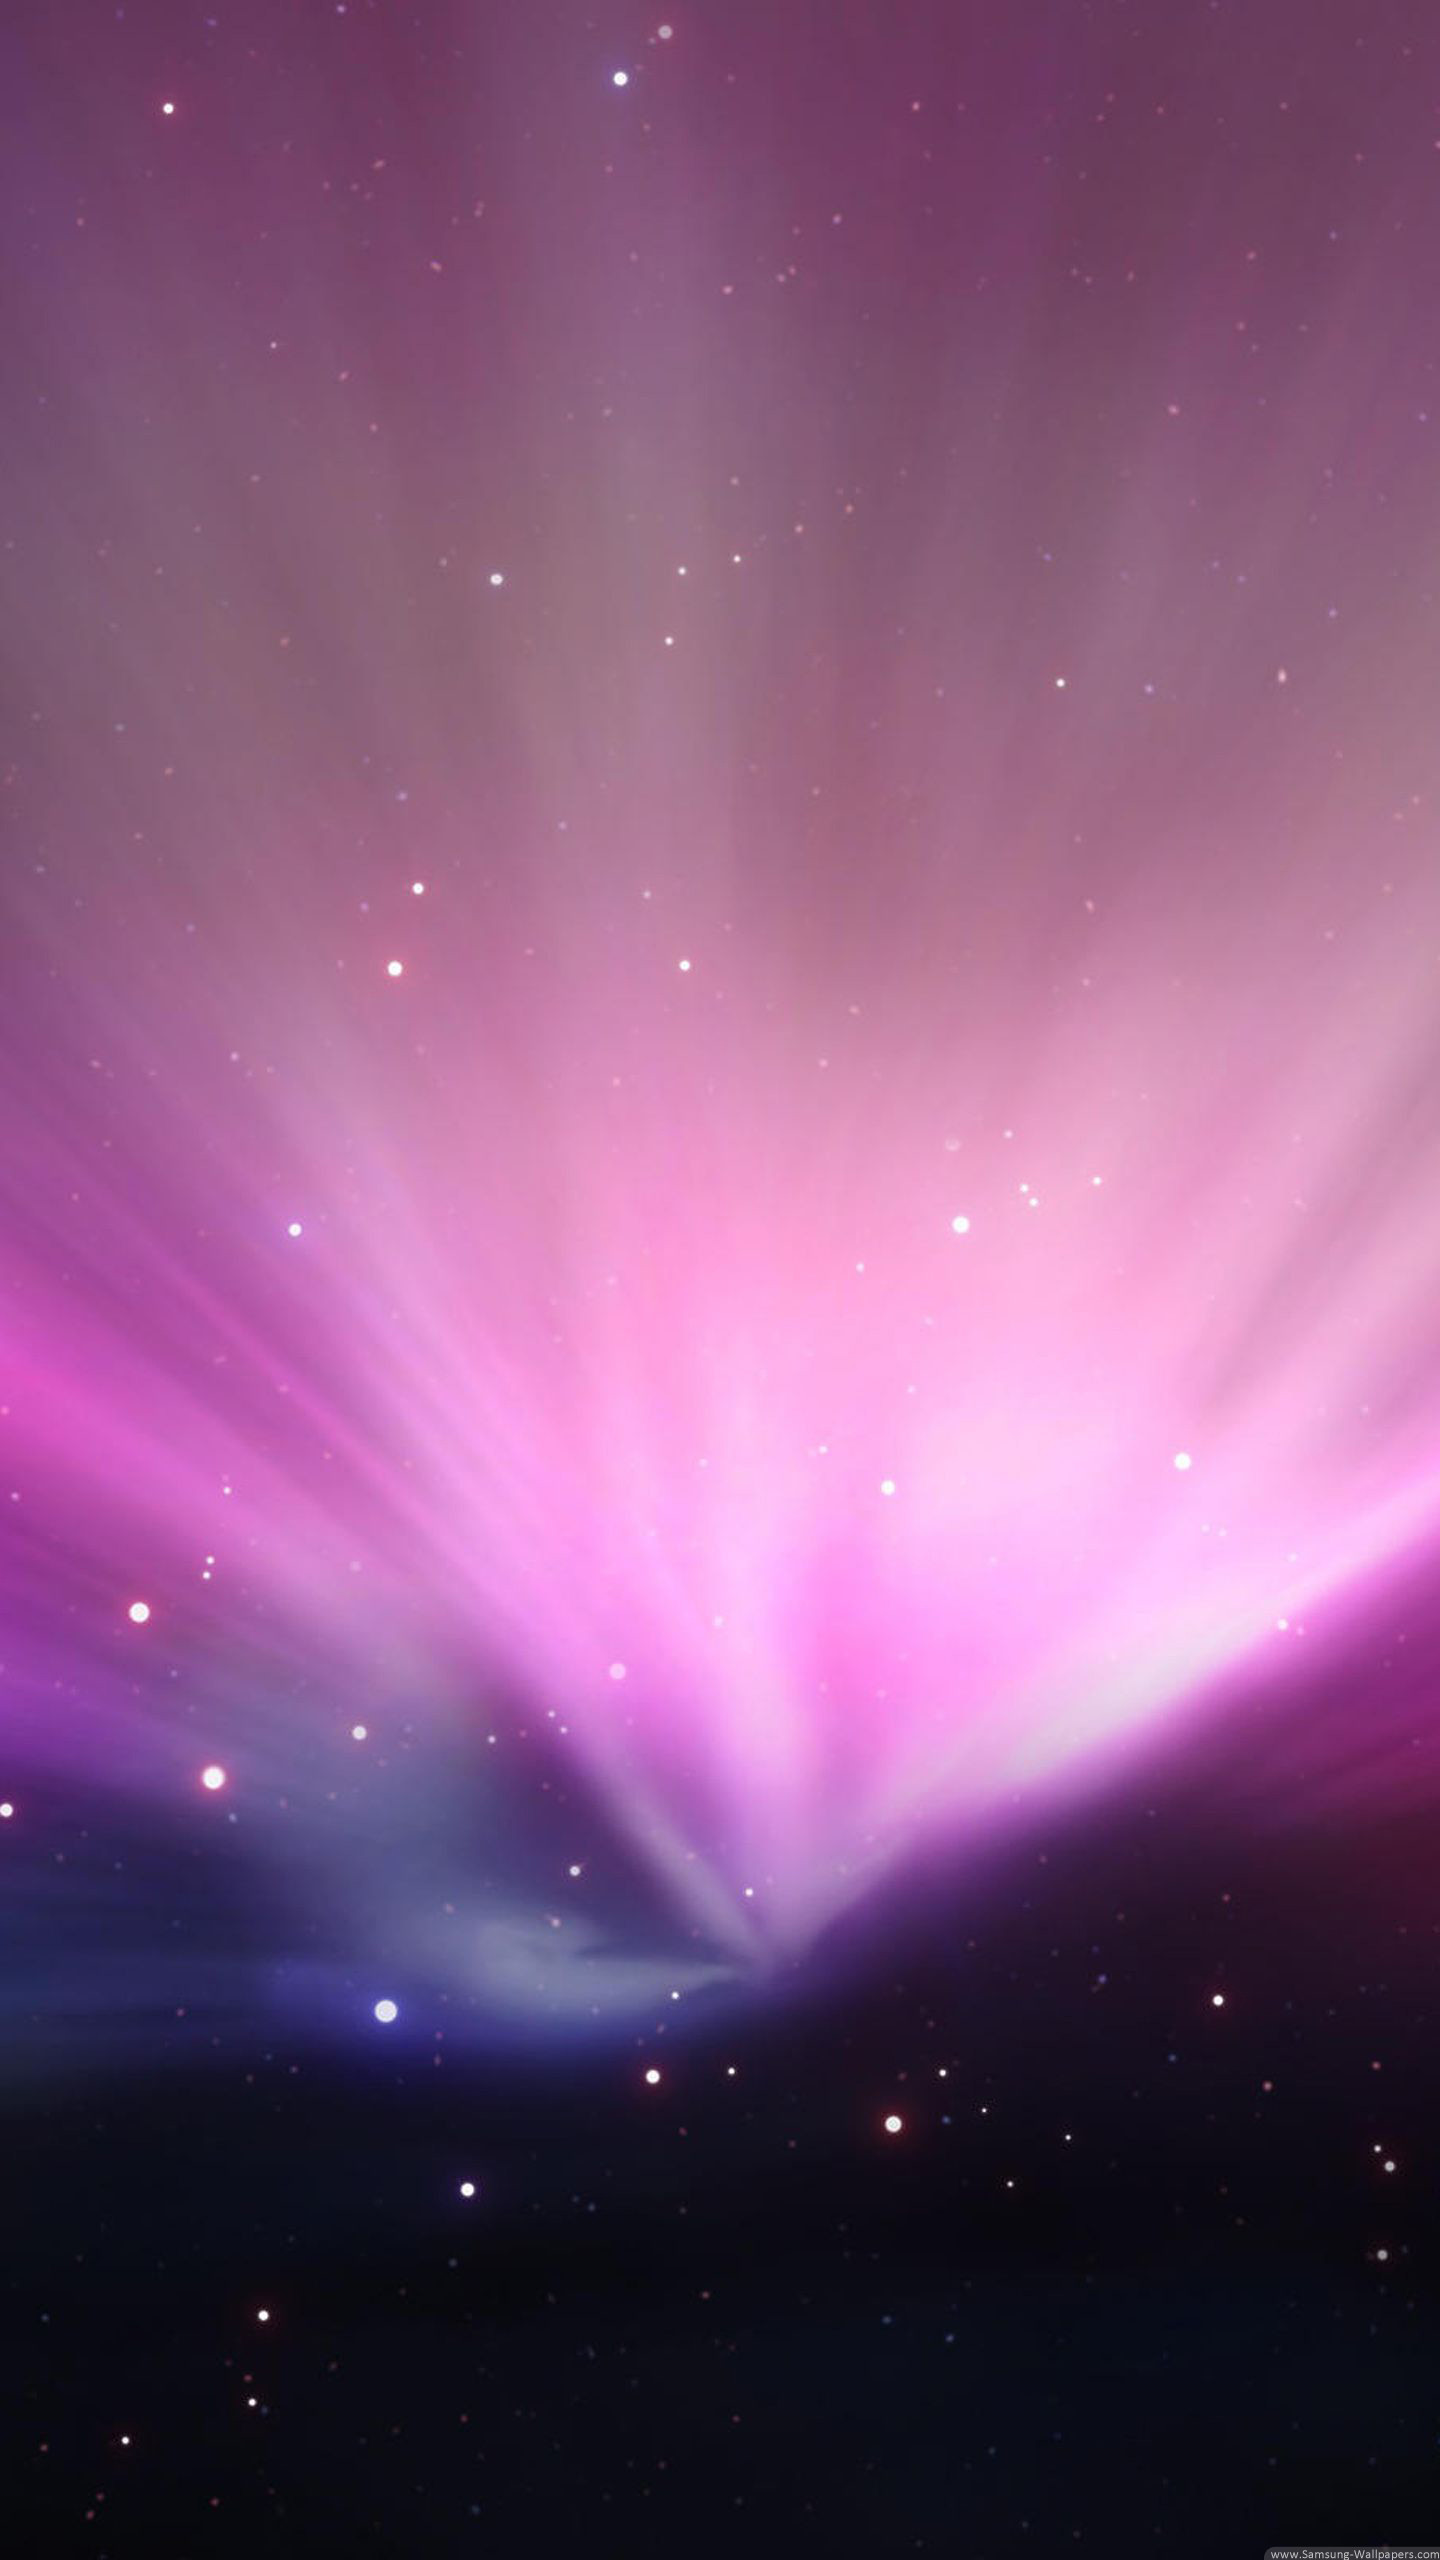 Space Iphone Wallpaper Find best latest Space Iphone Wallpaper for your PC  desktop background & mobile phones. | new post june 2016 | Pinterest |  Space …